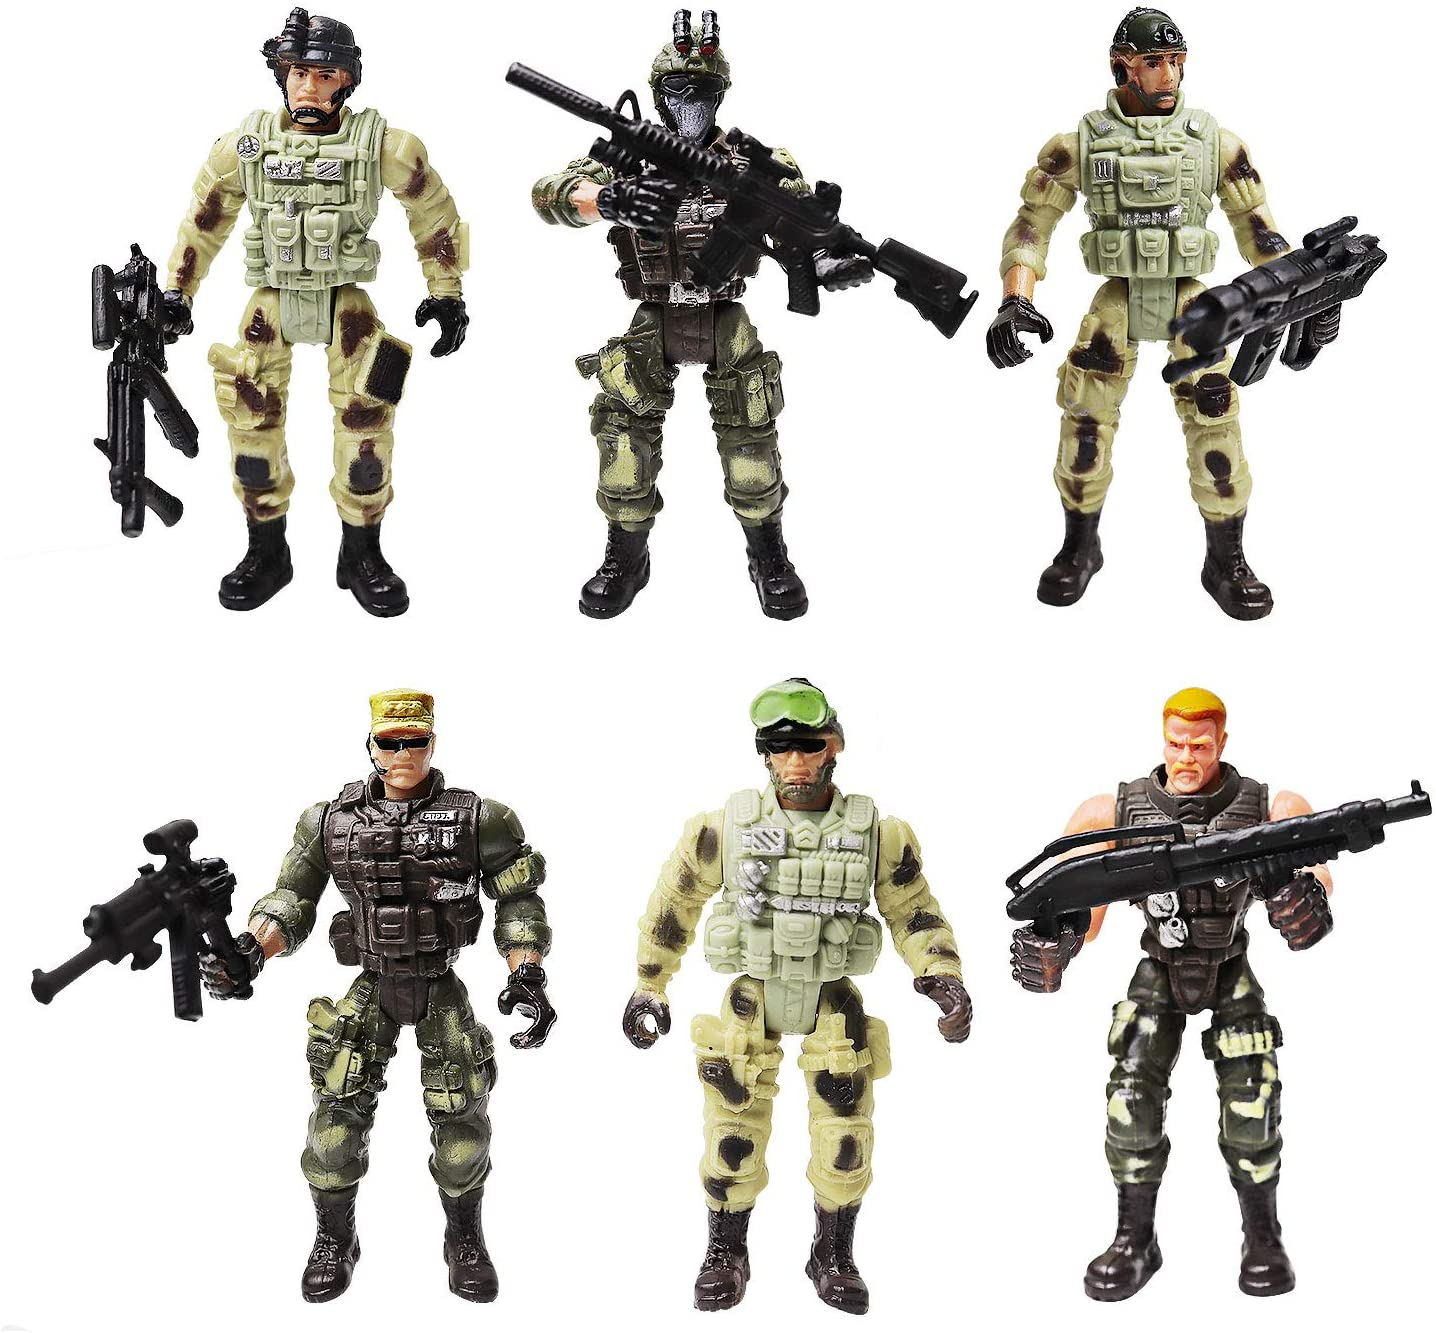 Army Action Figures Toys Online Discount Shop For Electronics Apparel Toys Books Games Computers Shoes Jewelry Watches Baby Products Sports Outdoors Office Products Bed Bath Furniture Tools Hardware Automotive